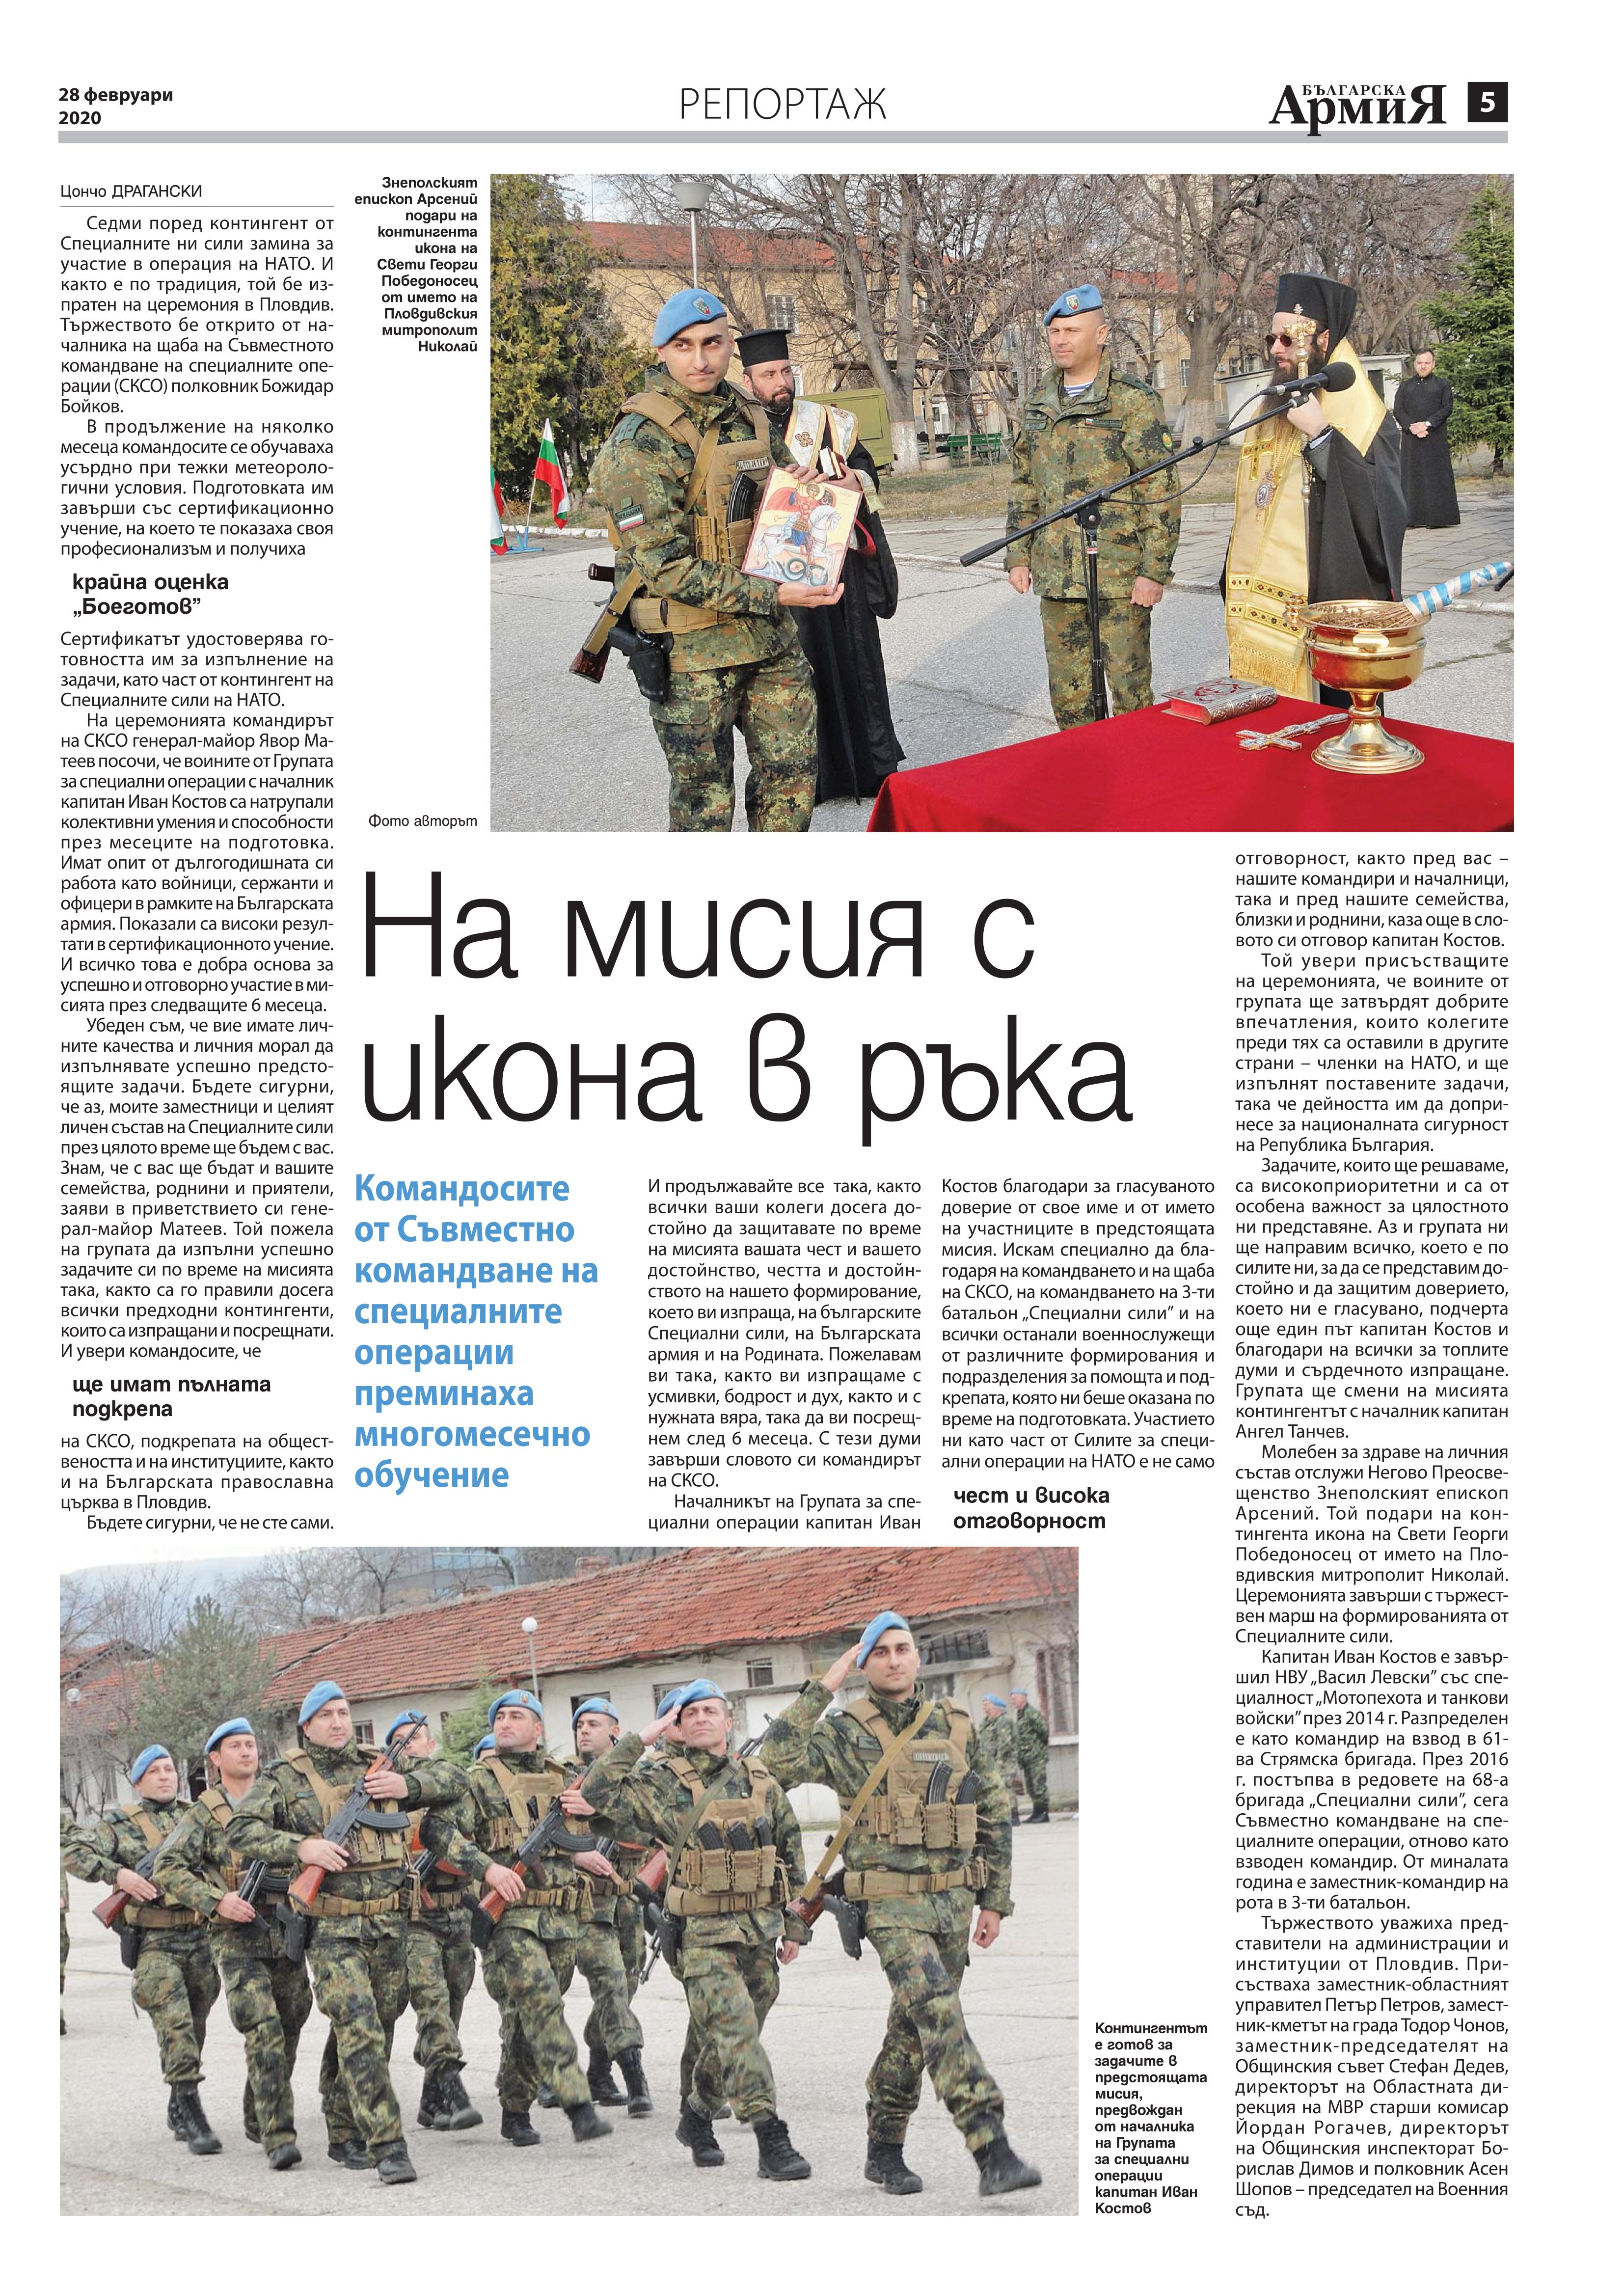 https://www.armymedia.bg/wp-content/uploads/2015/06/05.page1_-124.jpg